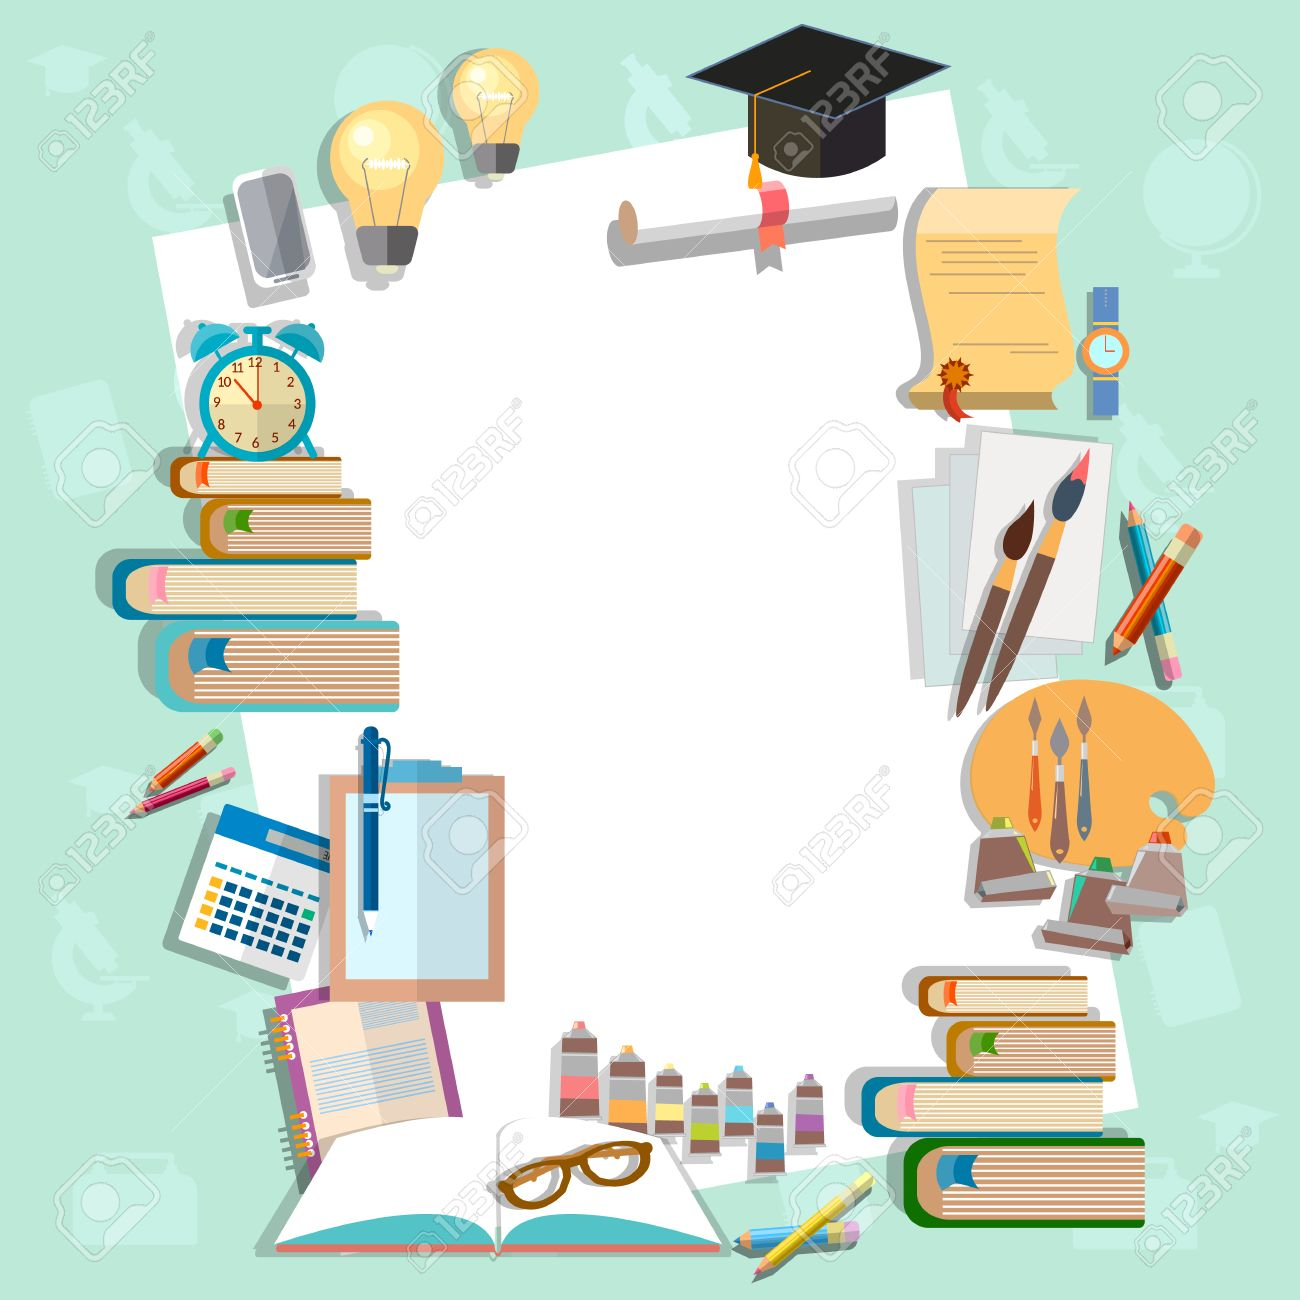 education background diploma exams back to school college campus  education background diploma exams back to school college campus algebra mathematics graduation cup vector illustration stock